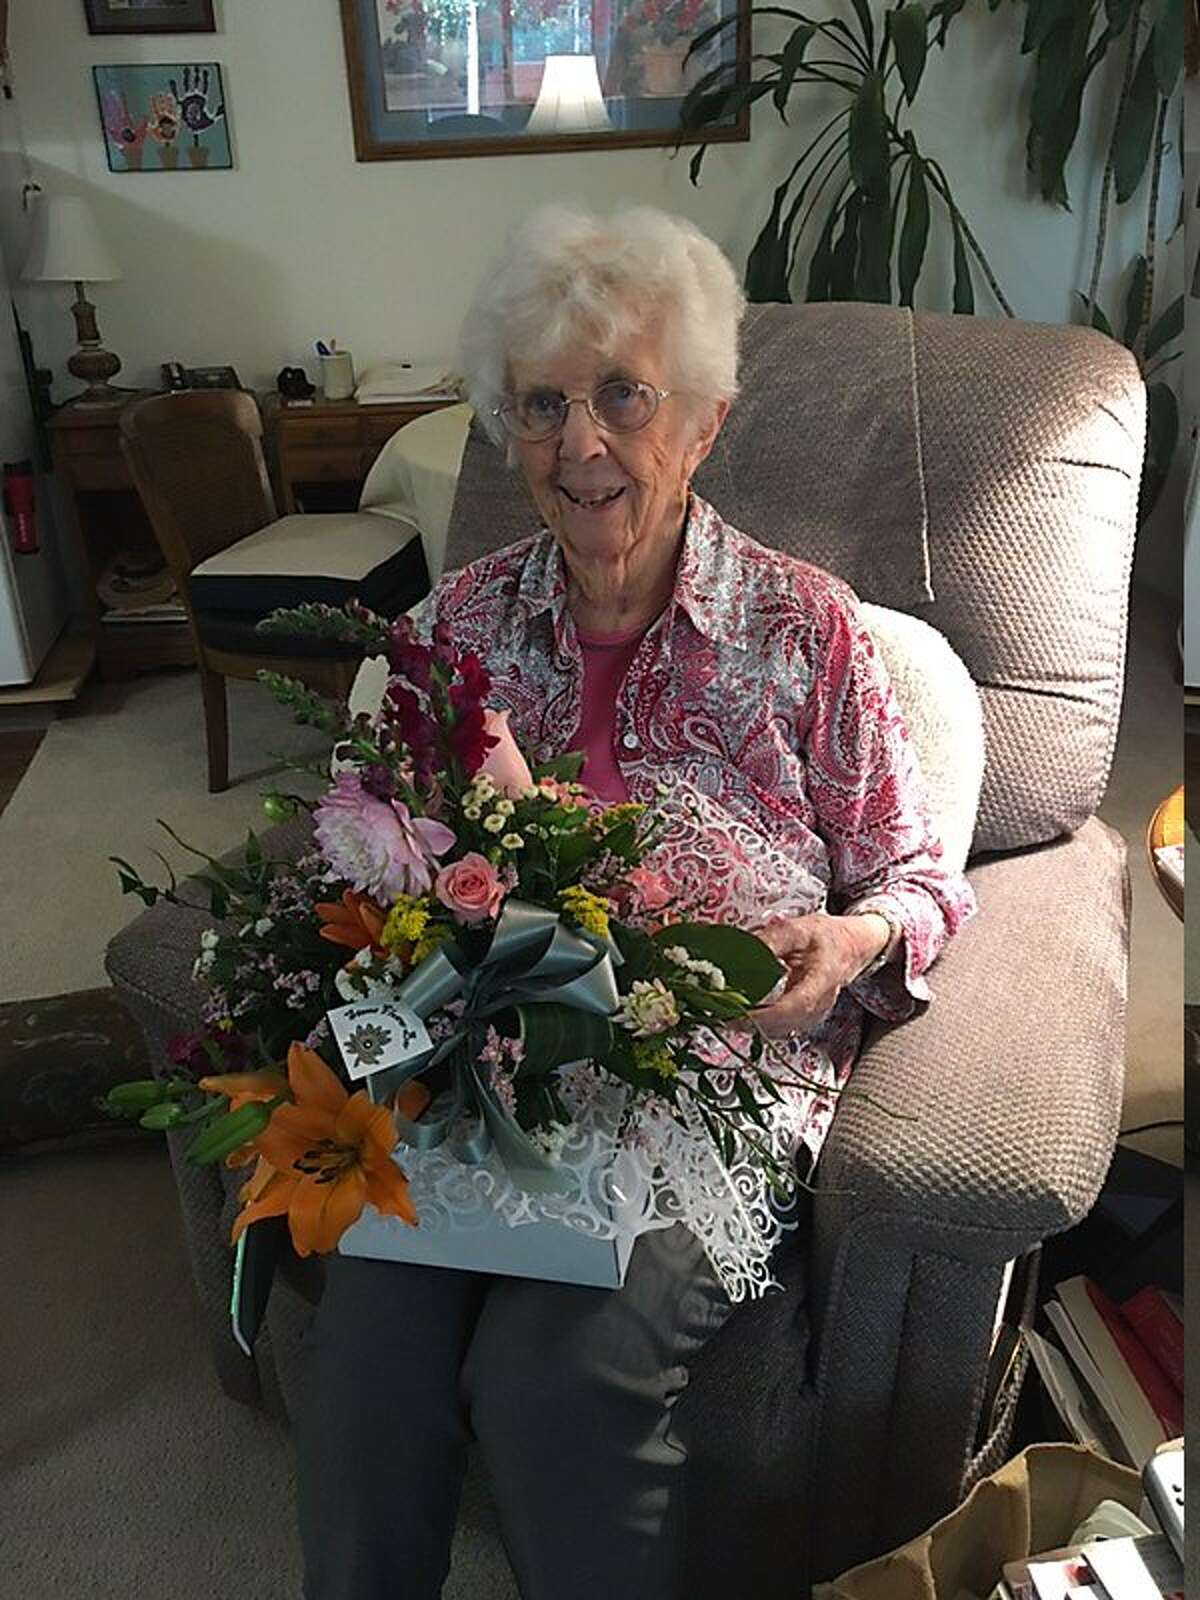 Marcia Hamilton, 96, was last seen slipping into a stranger's car to flee from her blazing retirement home that got swept up in the Camp Fire in Paradise, California. Hamilton was last seen leaving the Feather Canyon Retirement Community in Paradise around 9:30 a.m. on Thursday, November 8, 2018.